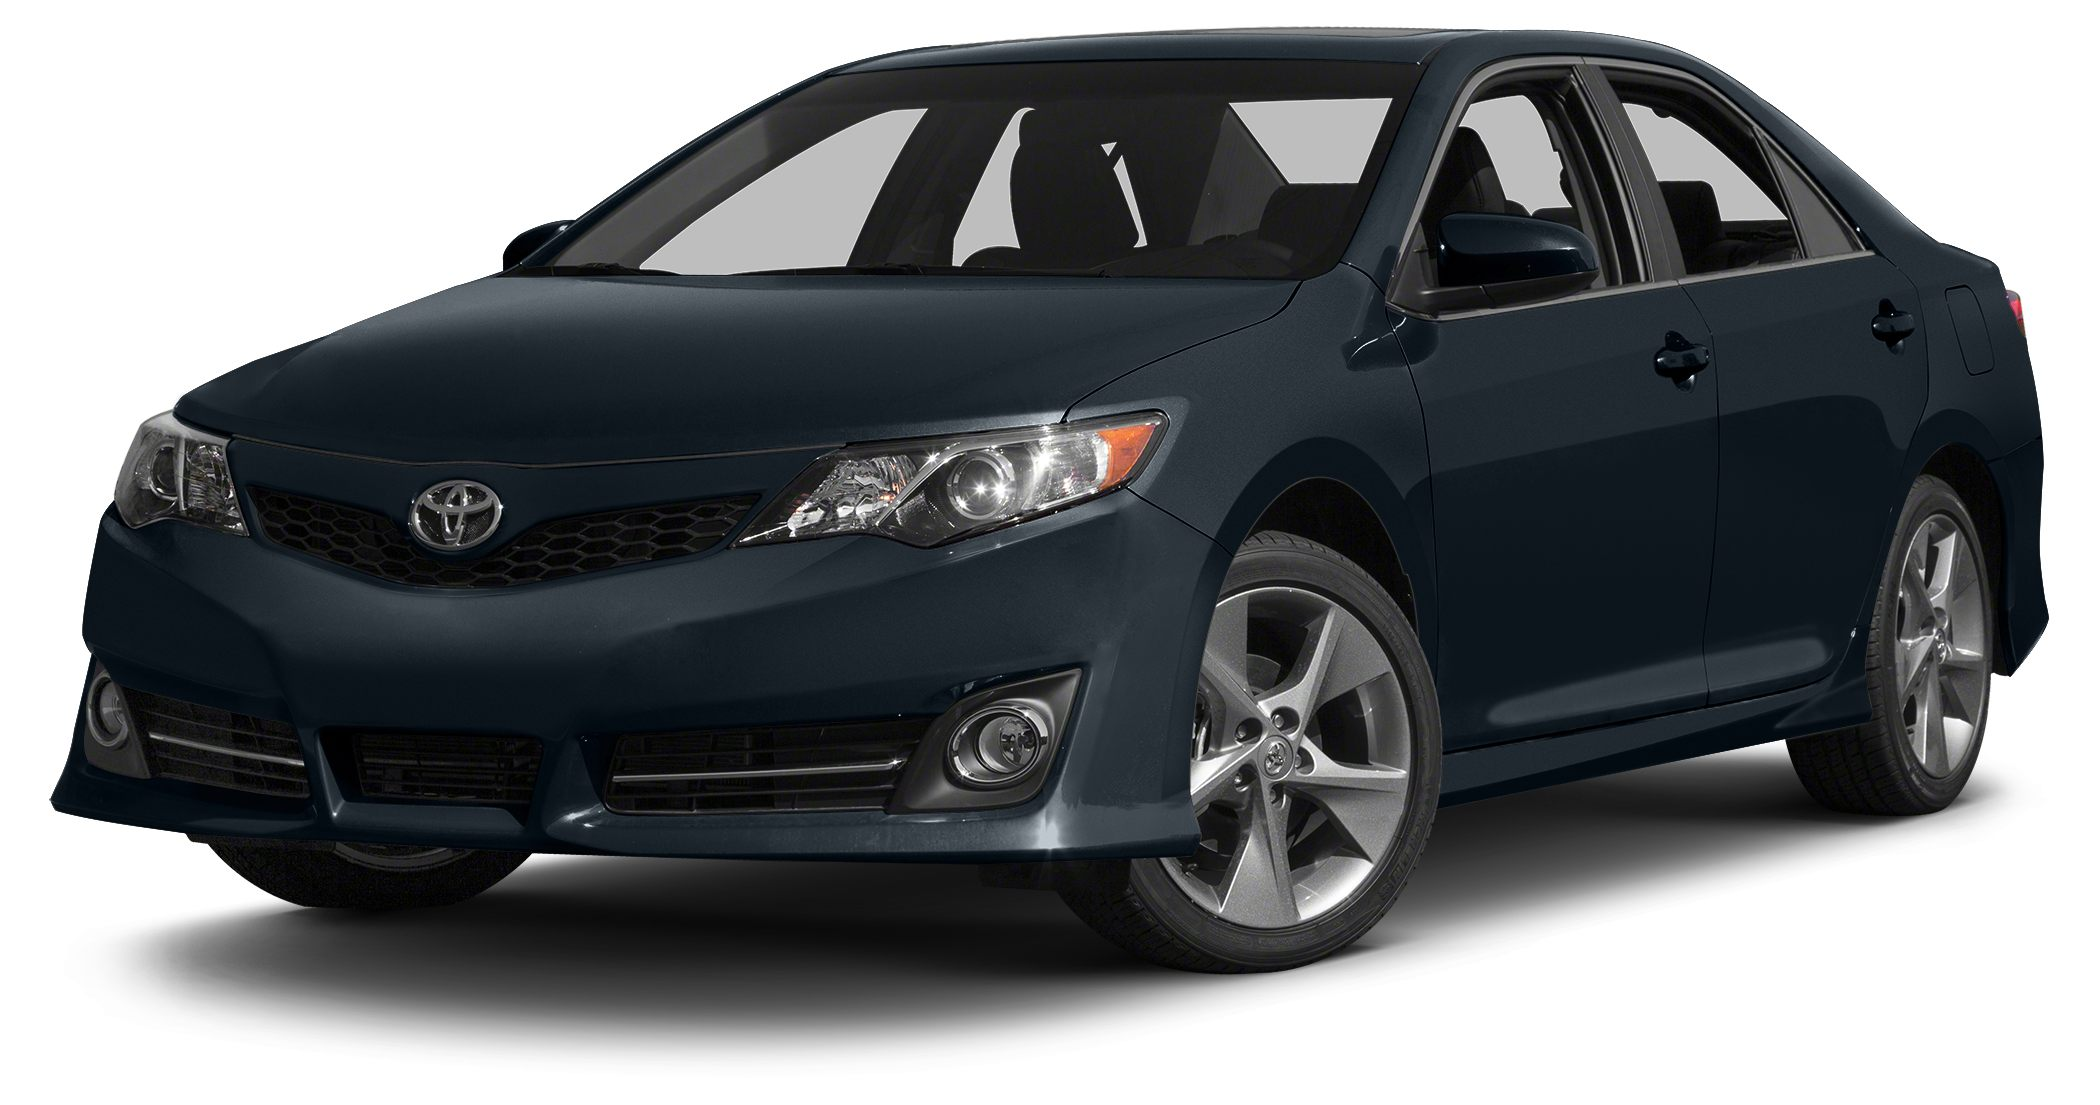 2014 Toyota Camry SE WAS 184800 FUEL EFFICIENT 35 MPG Hwy25 MPG City CARFAX 1-Owner LOW MILE